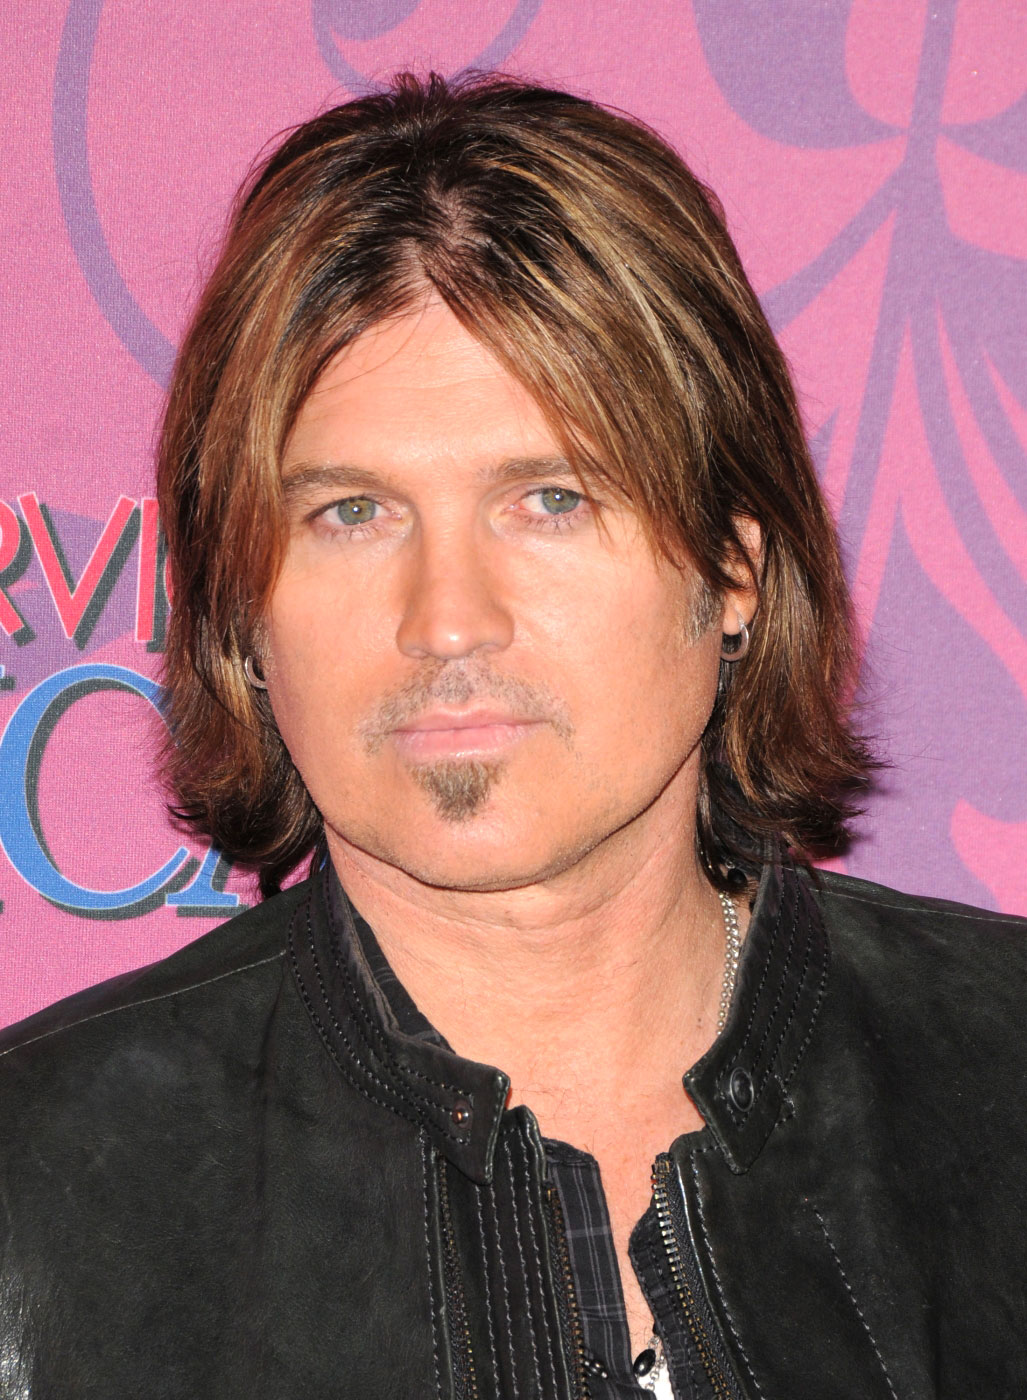 Billy Ray Cyrus Short Hair : billy, cyrus, short, Billy, Cyrus, Hairstyle, EasyHairStyler